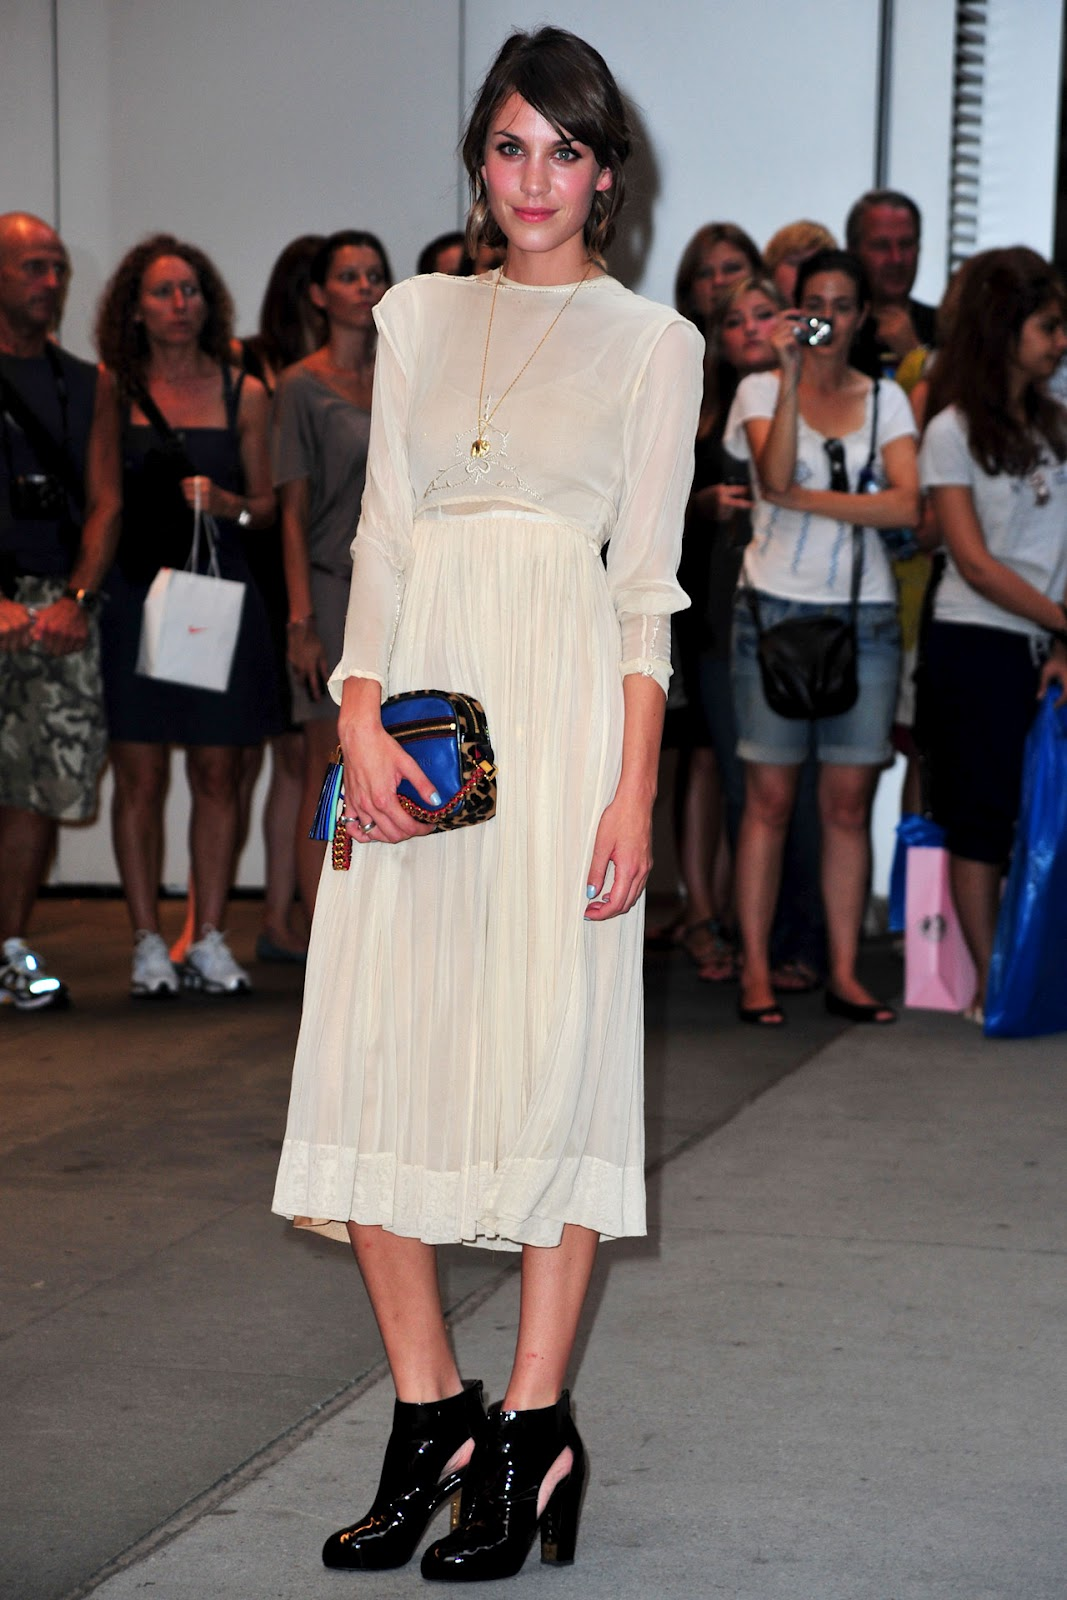 9914954f60ff FROM the small screen to fashion's front row - Alexa Chung'sunique look  inspires legions of copycats keen to emulate her trademark kooky style.